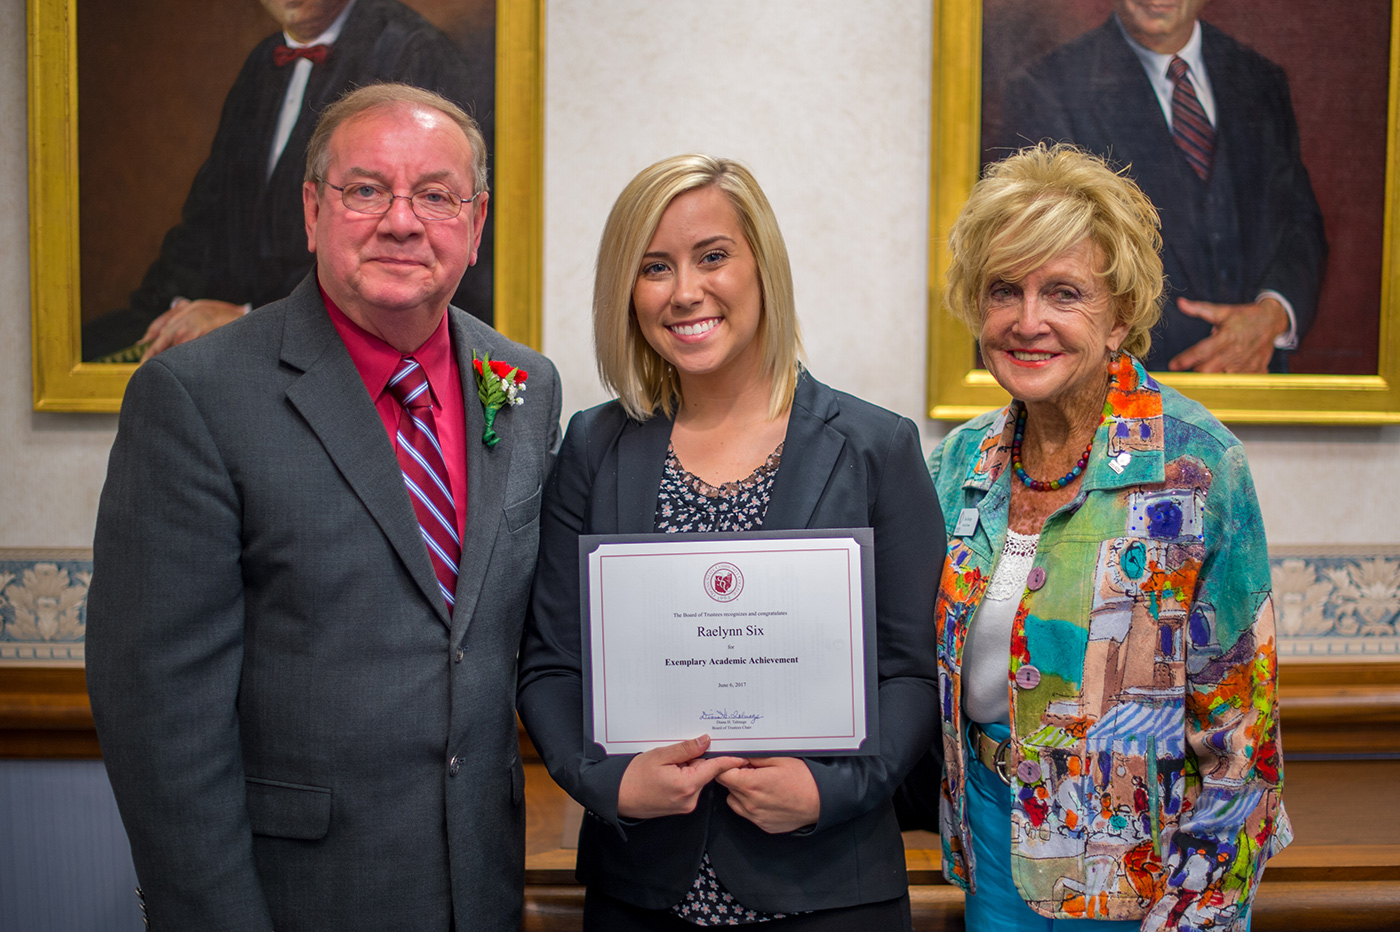 Student Life Committee Recognizes Raelynn Six